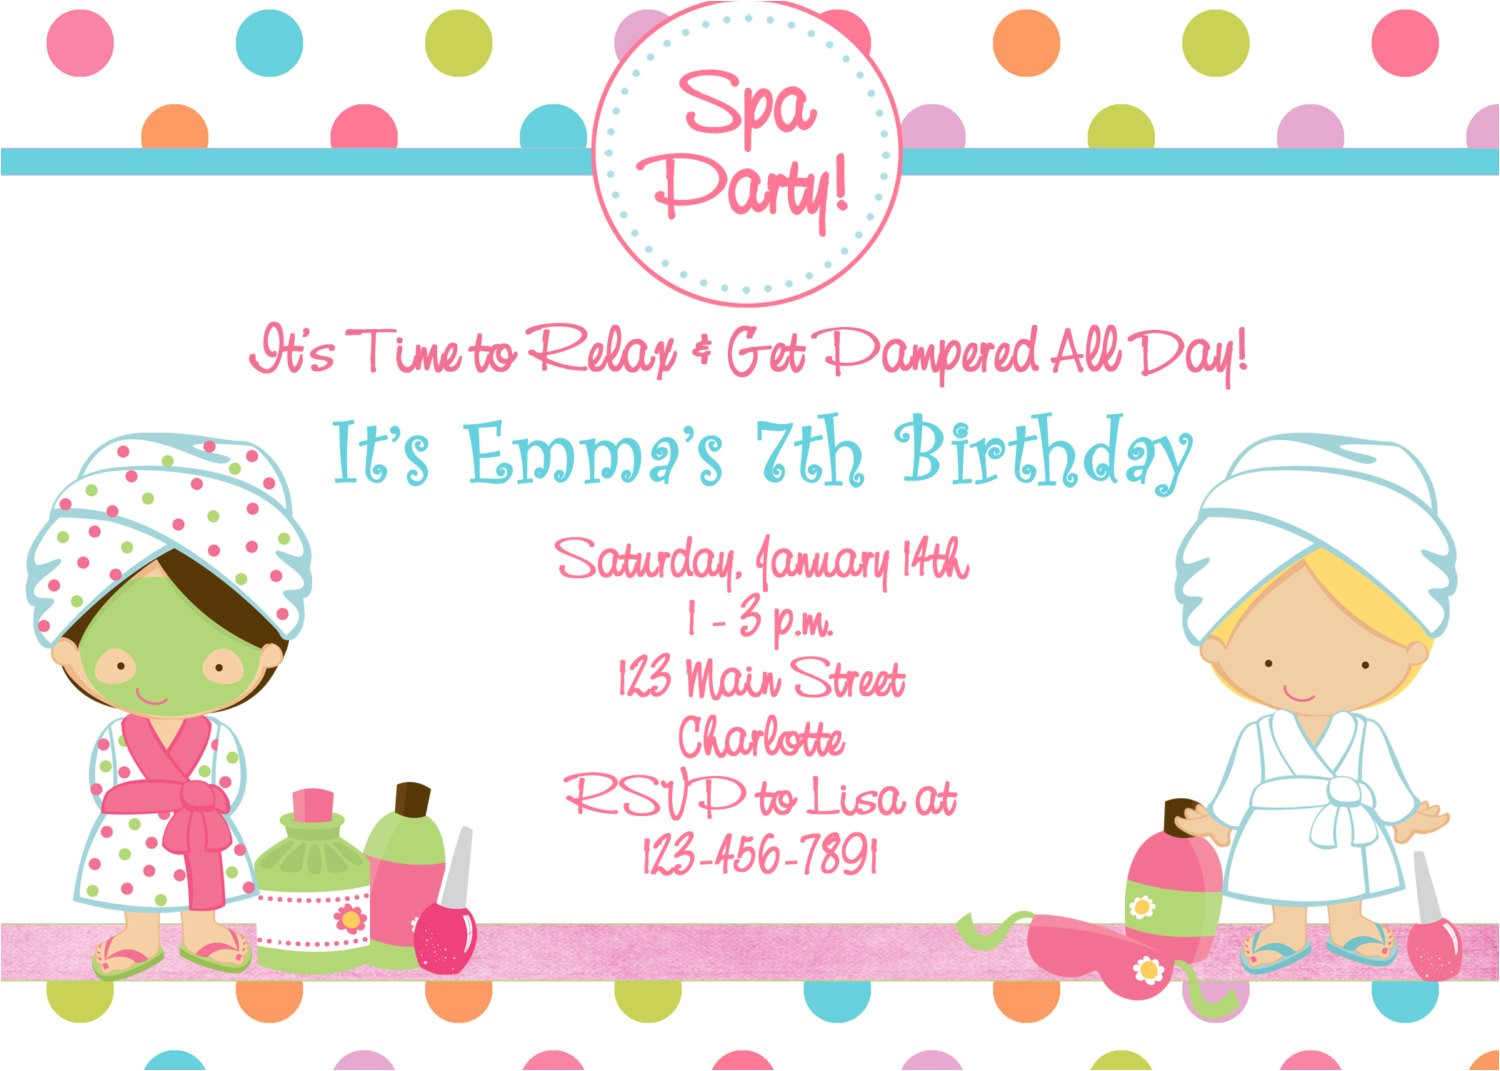 Free Printable Spa Party Invitations Free Printable Spa Birthday Party Invitations Pool